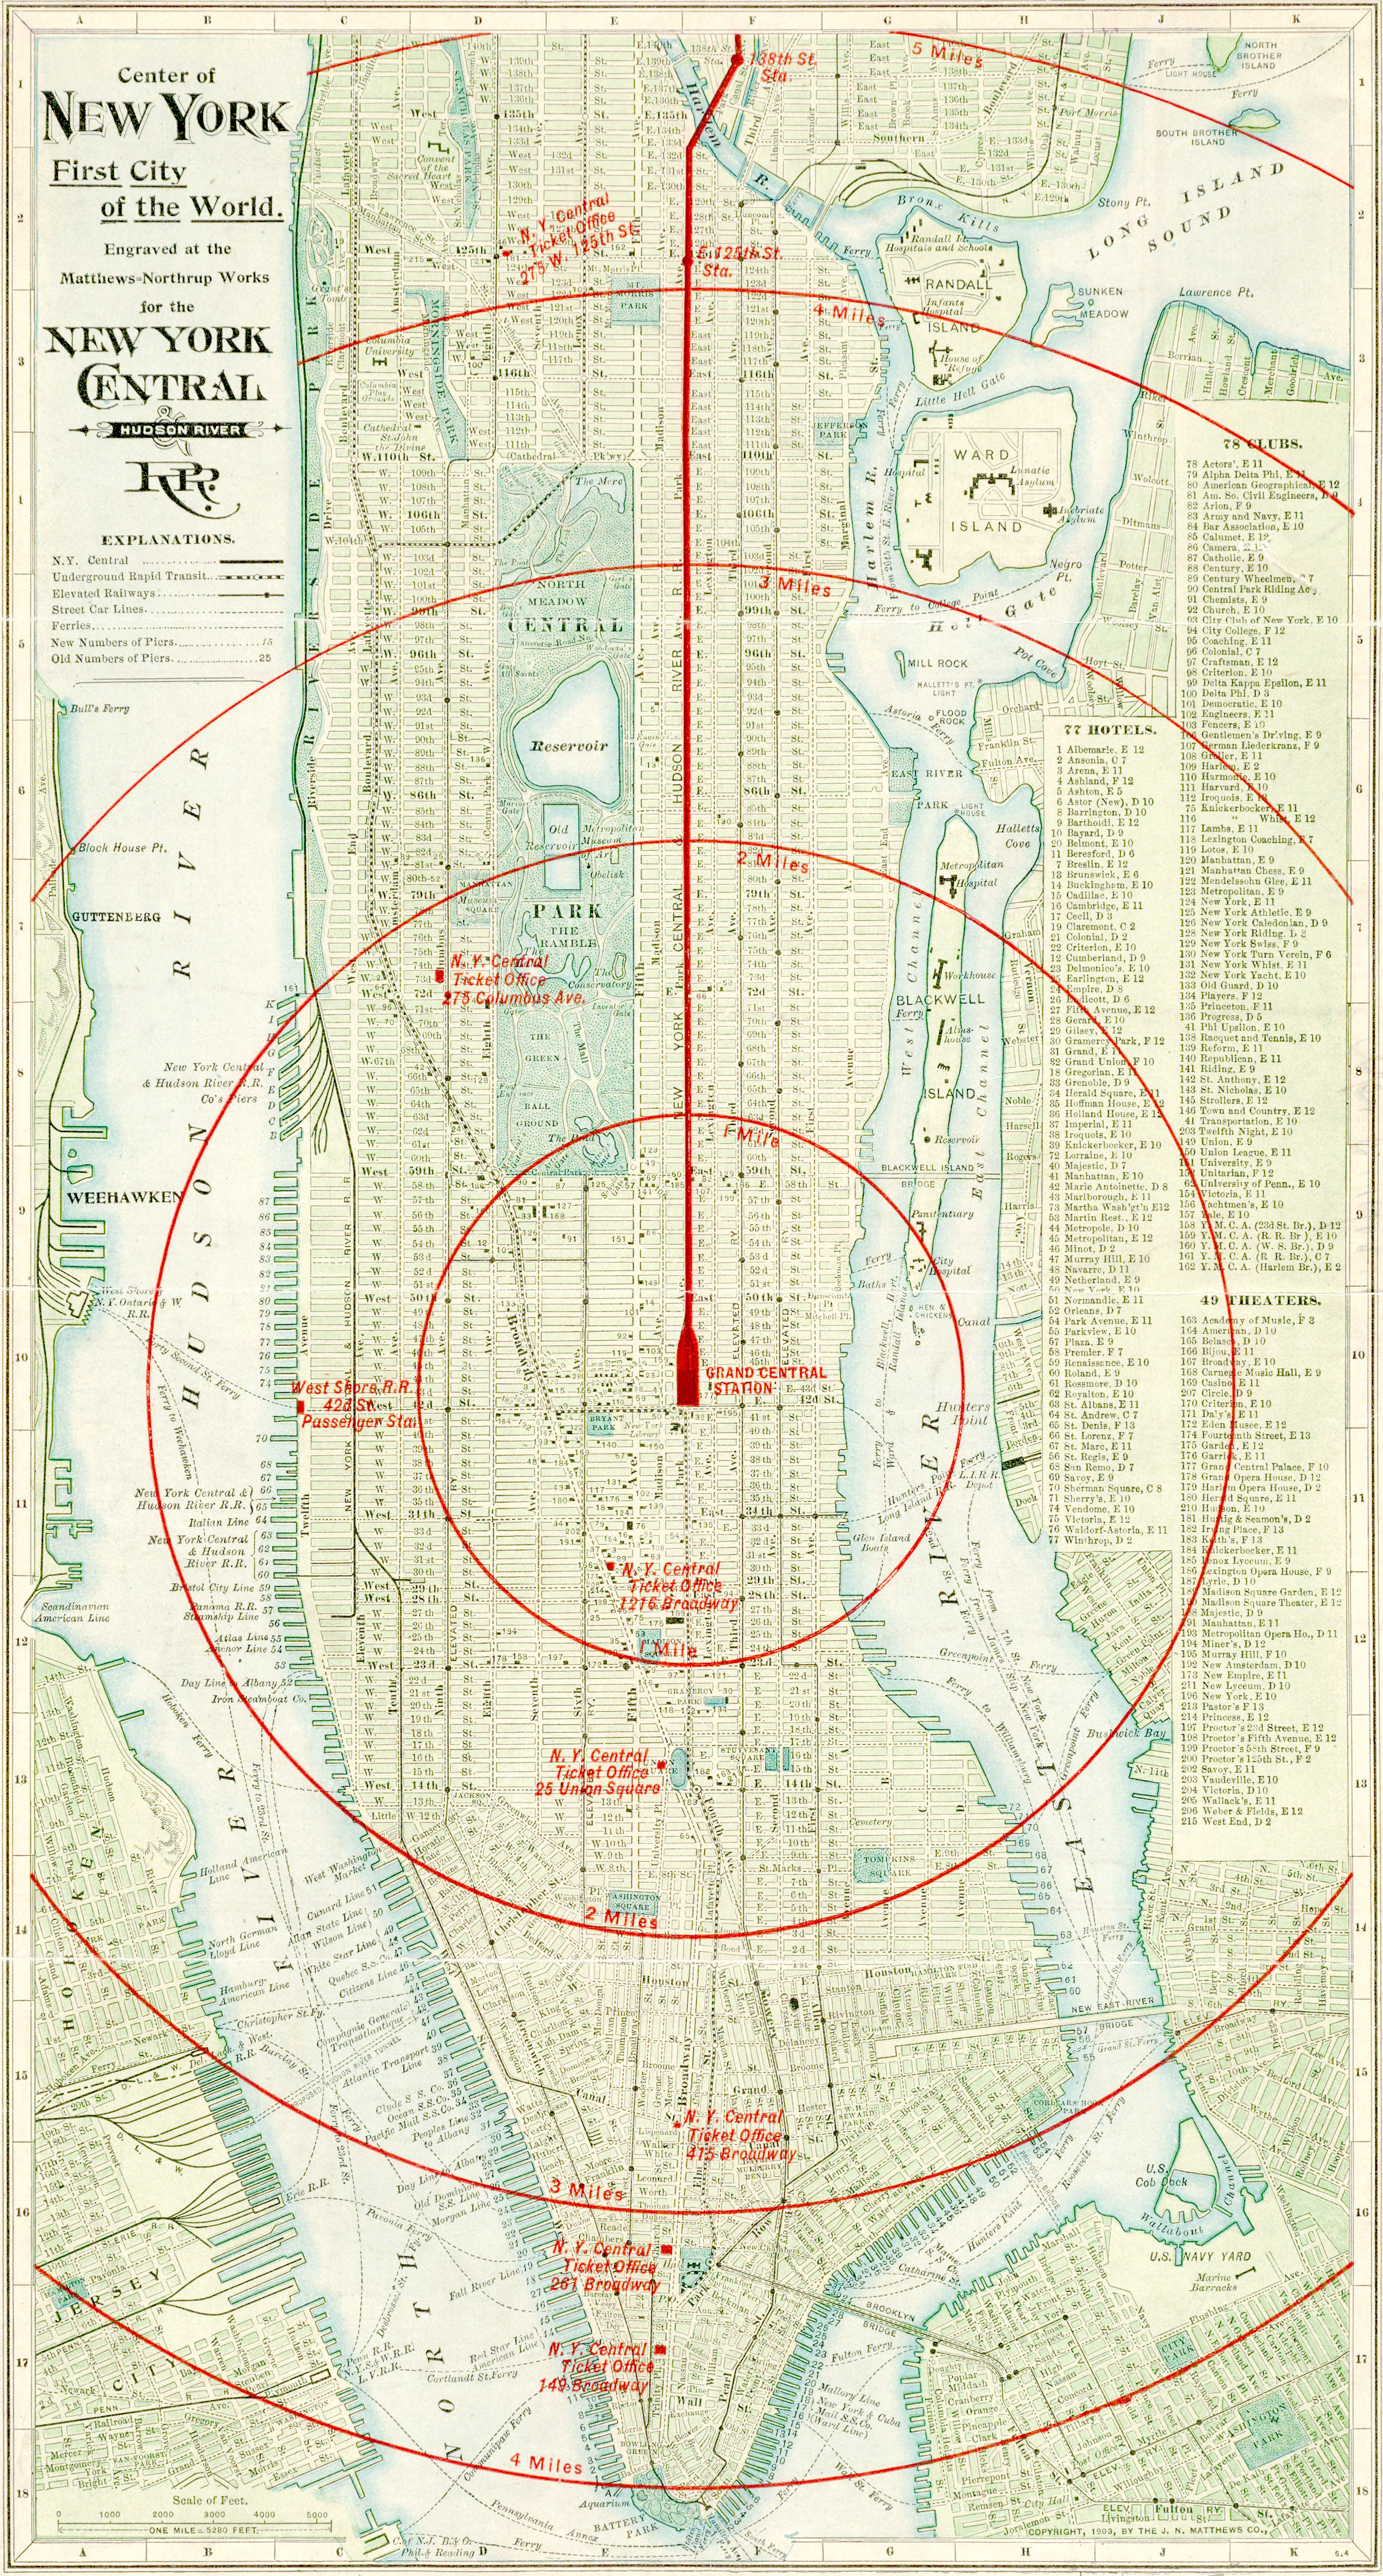 New york city a map of the center of the world in 1902 knowol this map of new york city was engraved for the new york central hudson river railroad in 1902 and shows routes for the ny central railroad sciox Image collections